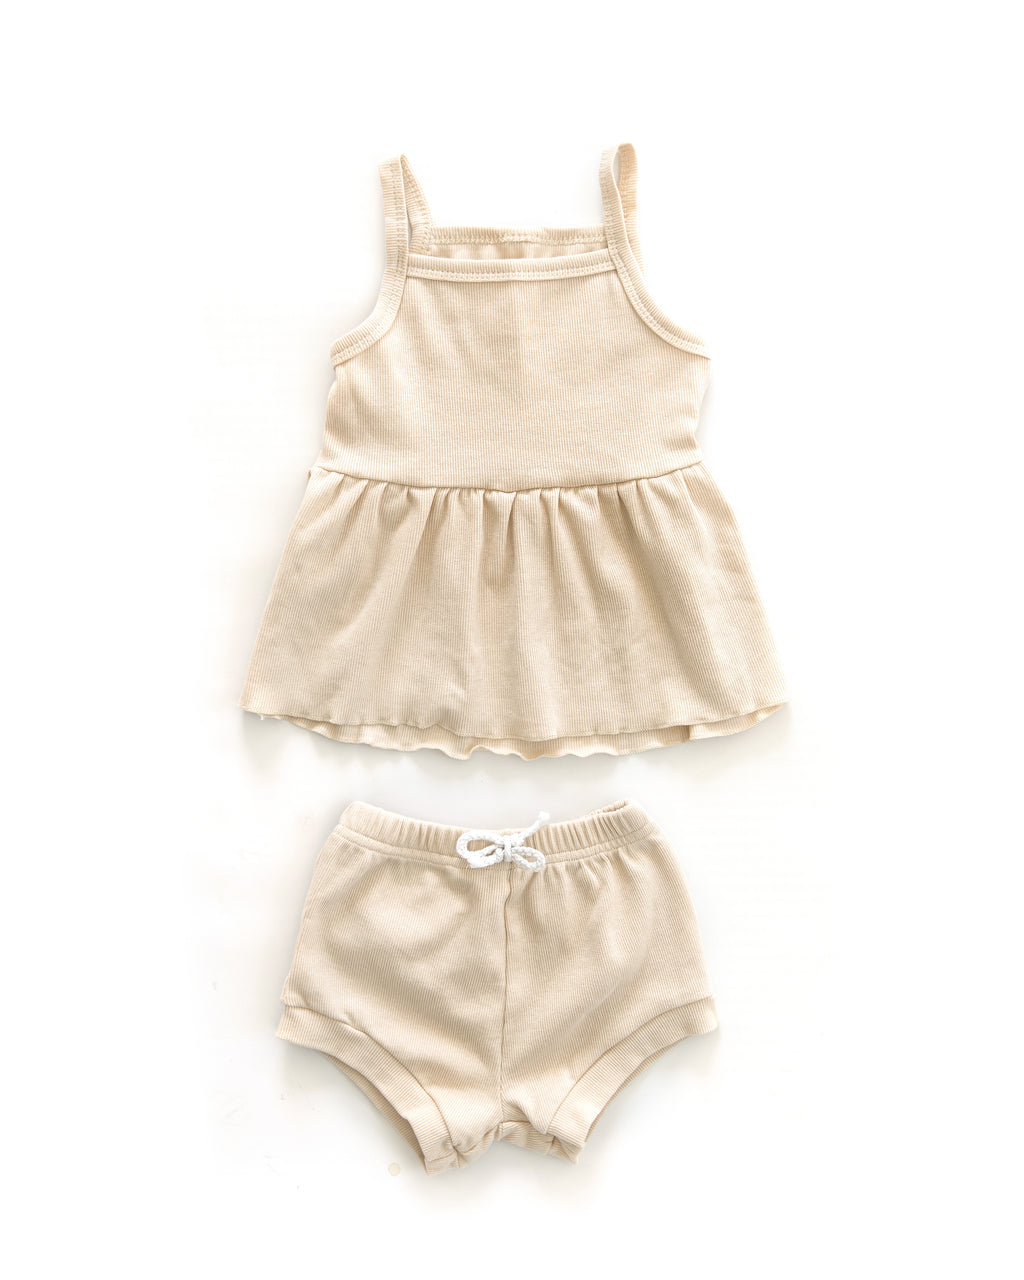 Candice Outfit in Oatmeal - Reverie Threads